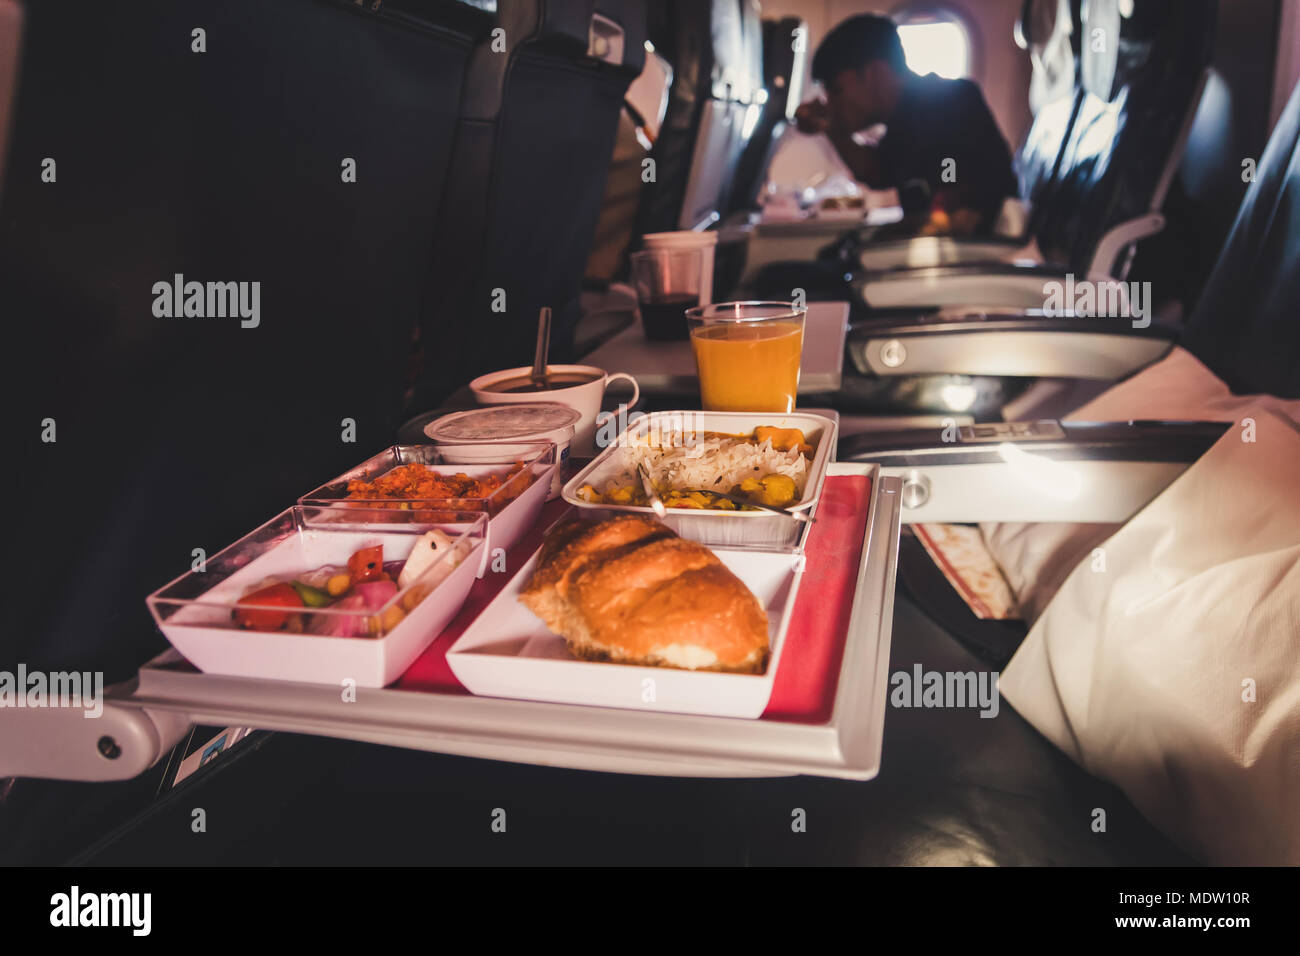 Tray of food. The passenger eats food on Board the plane on the background of the window. Meals on the plane. Different sets of food on the folding ta - Stock Image